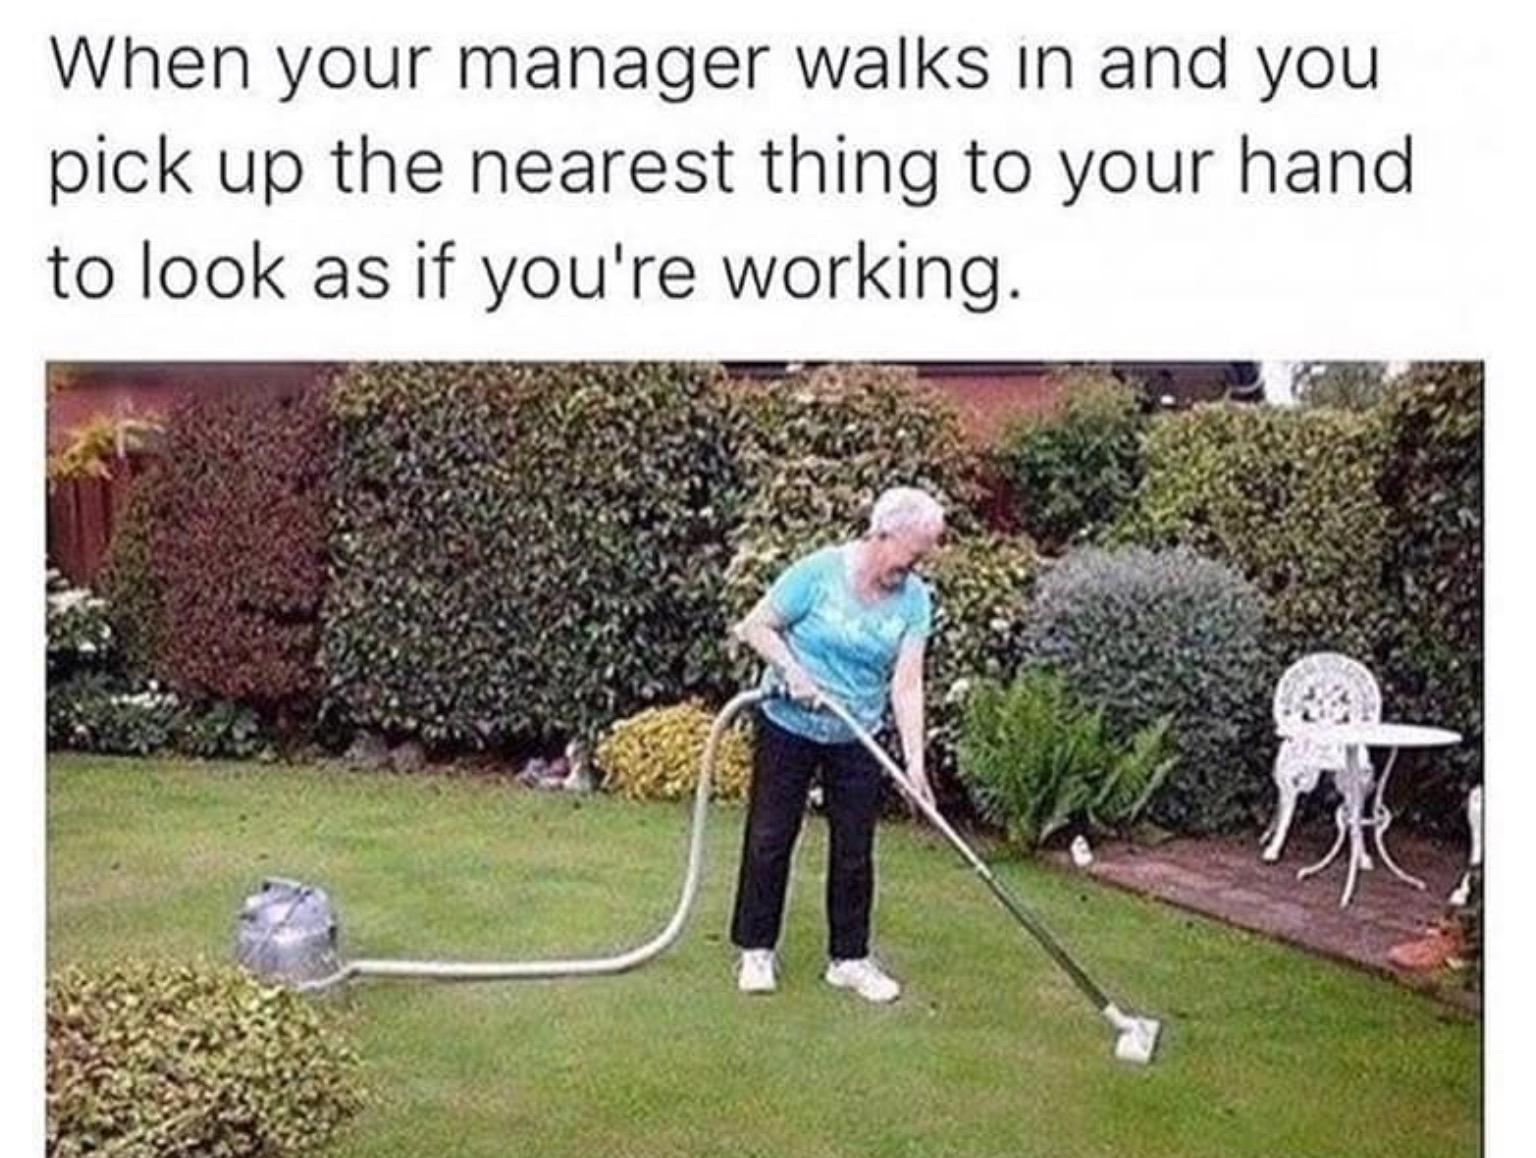 17-relatable-memes-for-students-working-in-retail-10